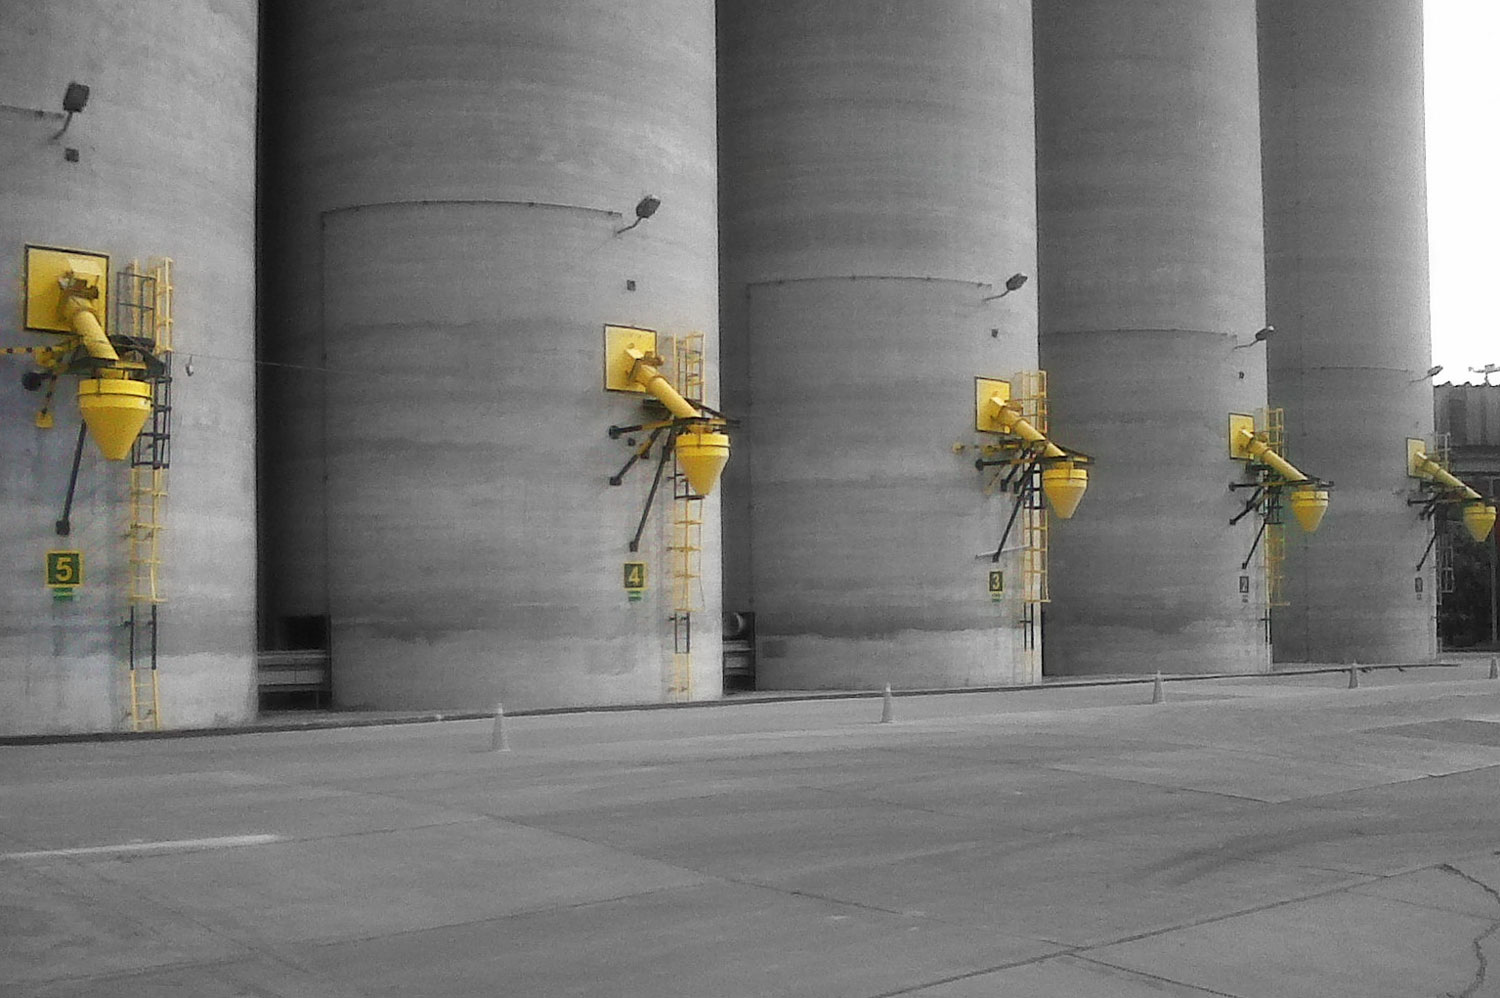 Five silos with DSH systems attached